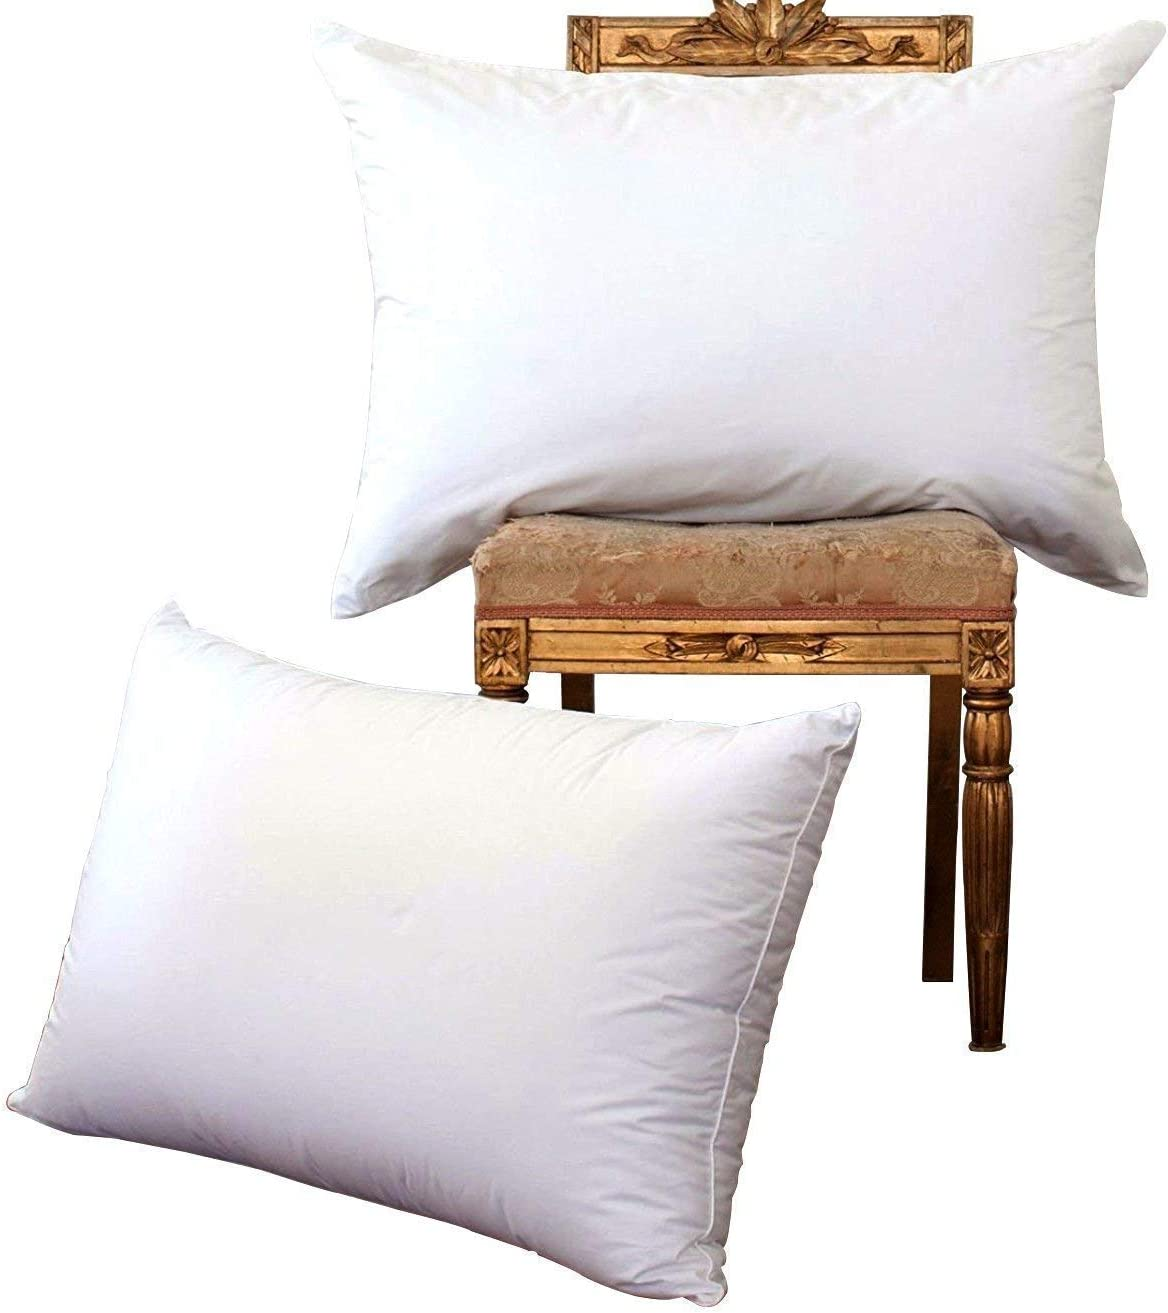 70% Off NP Luxury Goose Down Pillow